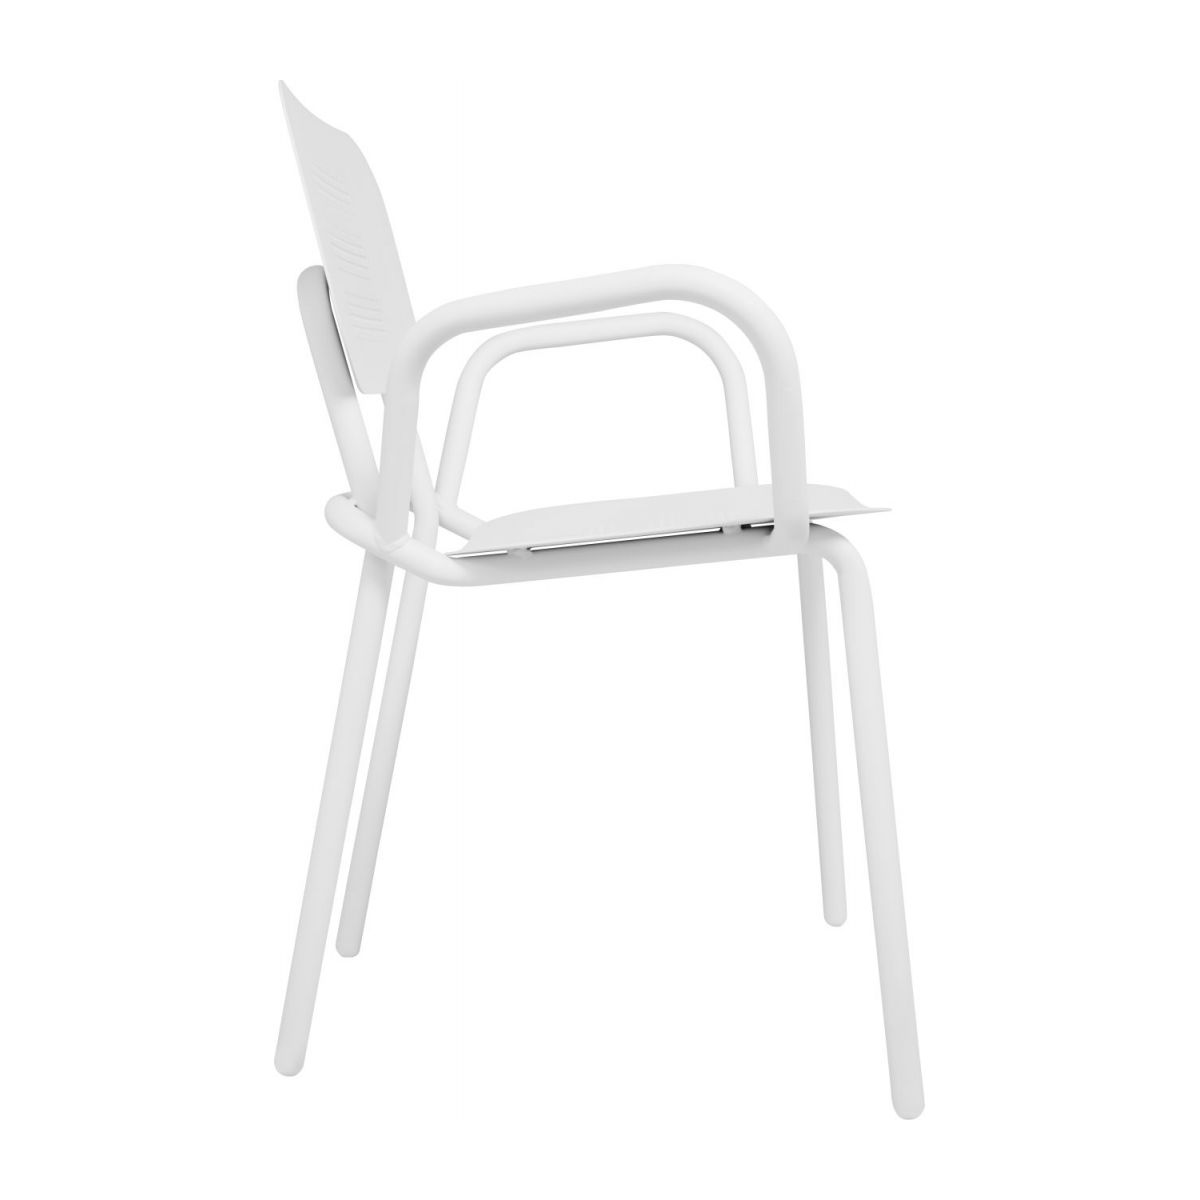 Garden chair with armrests n°6